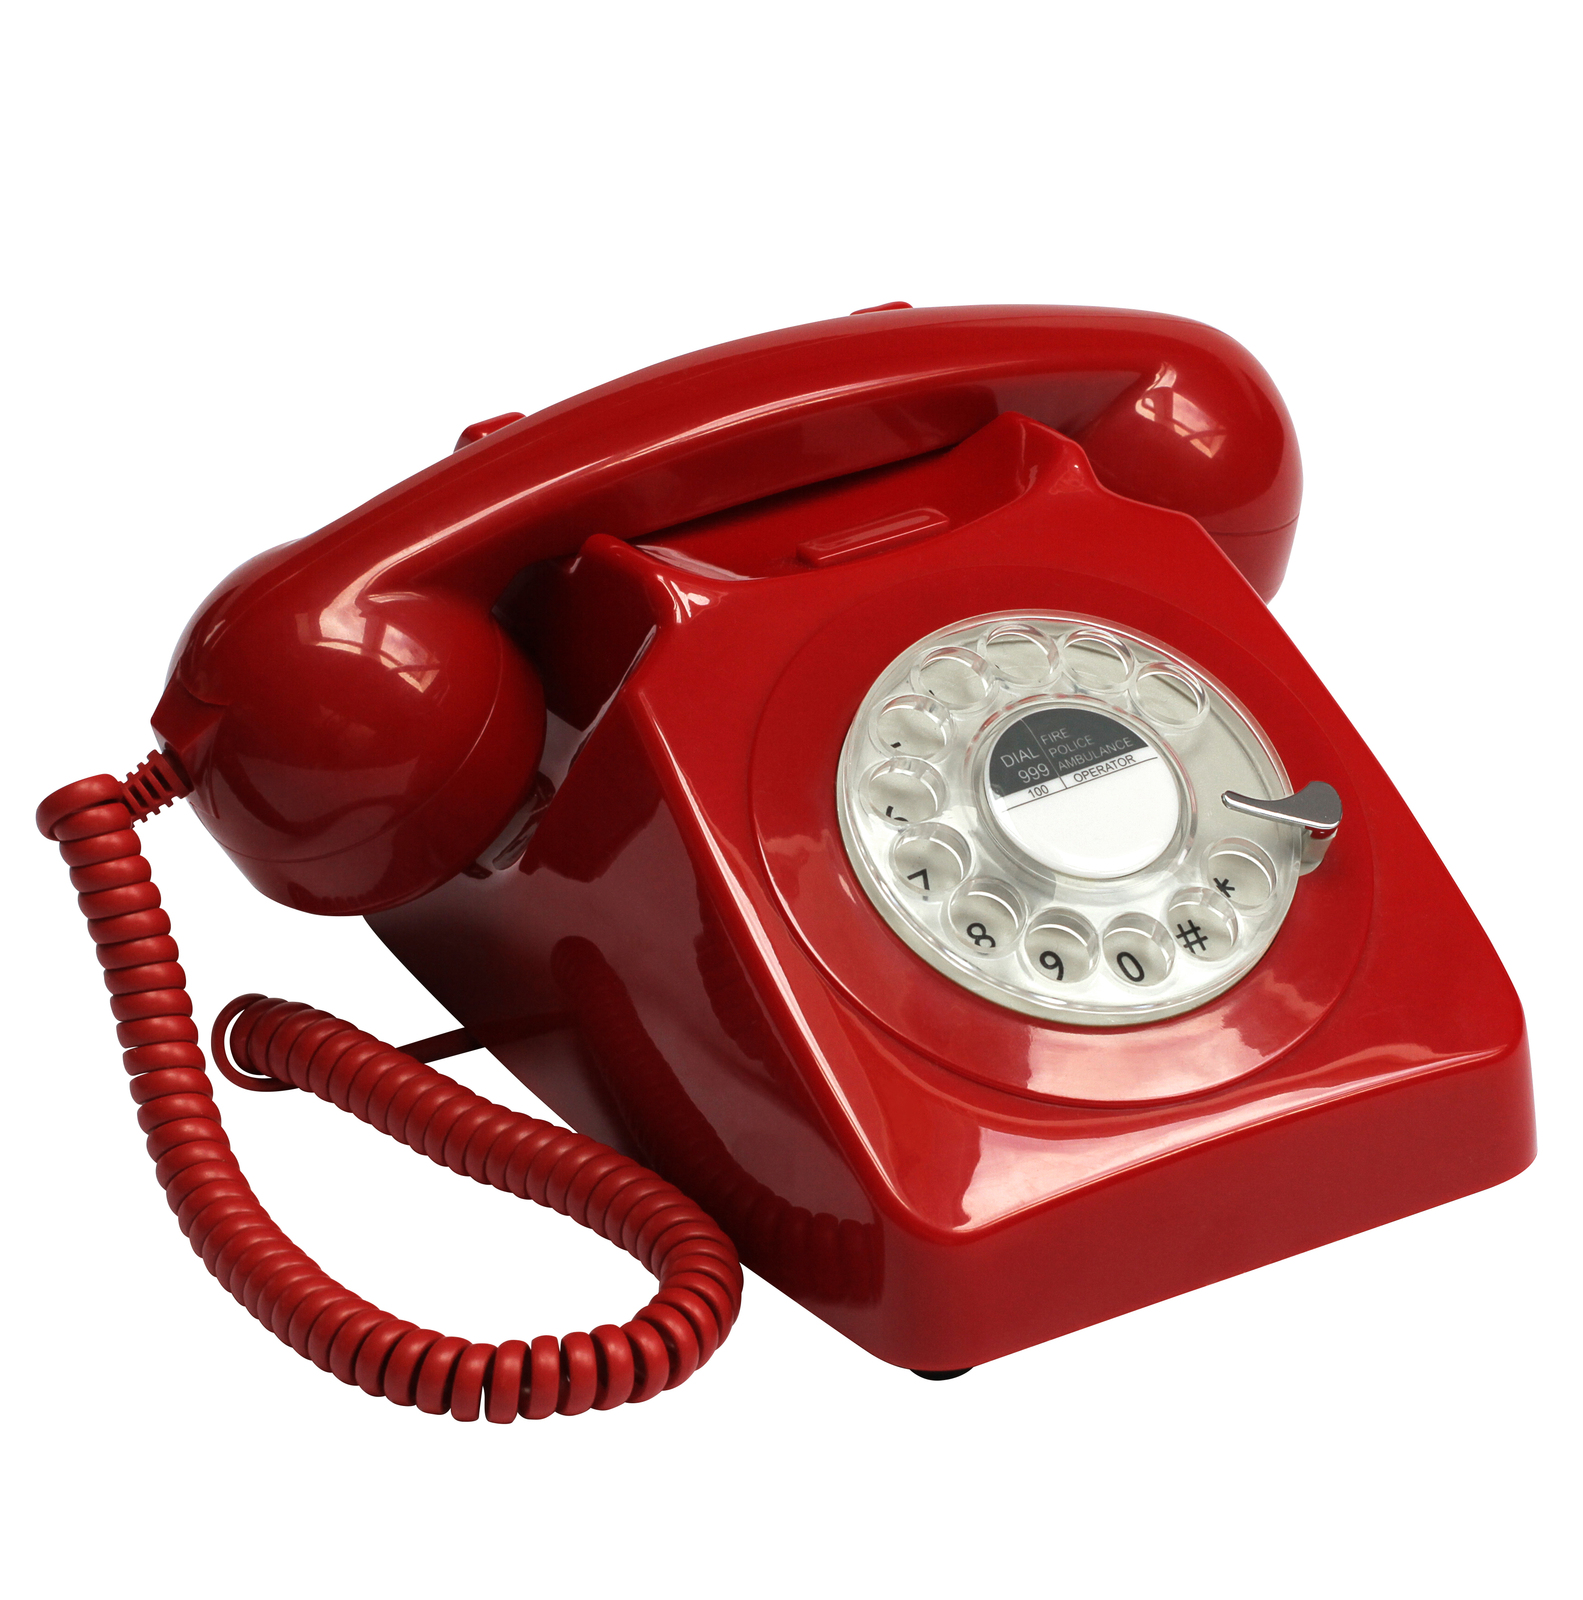 GPO 746 Traditional Rotary Dialing Telephone Red